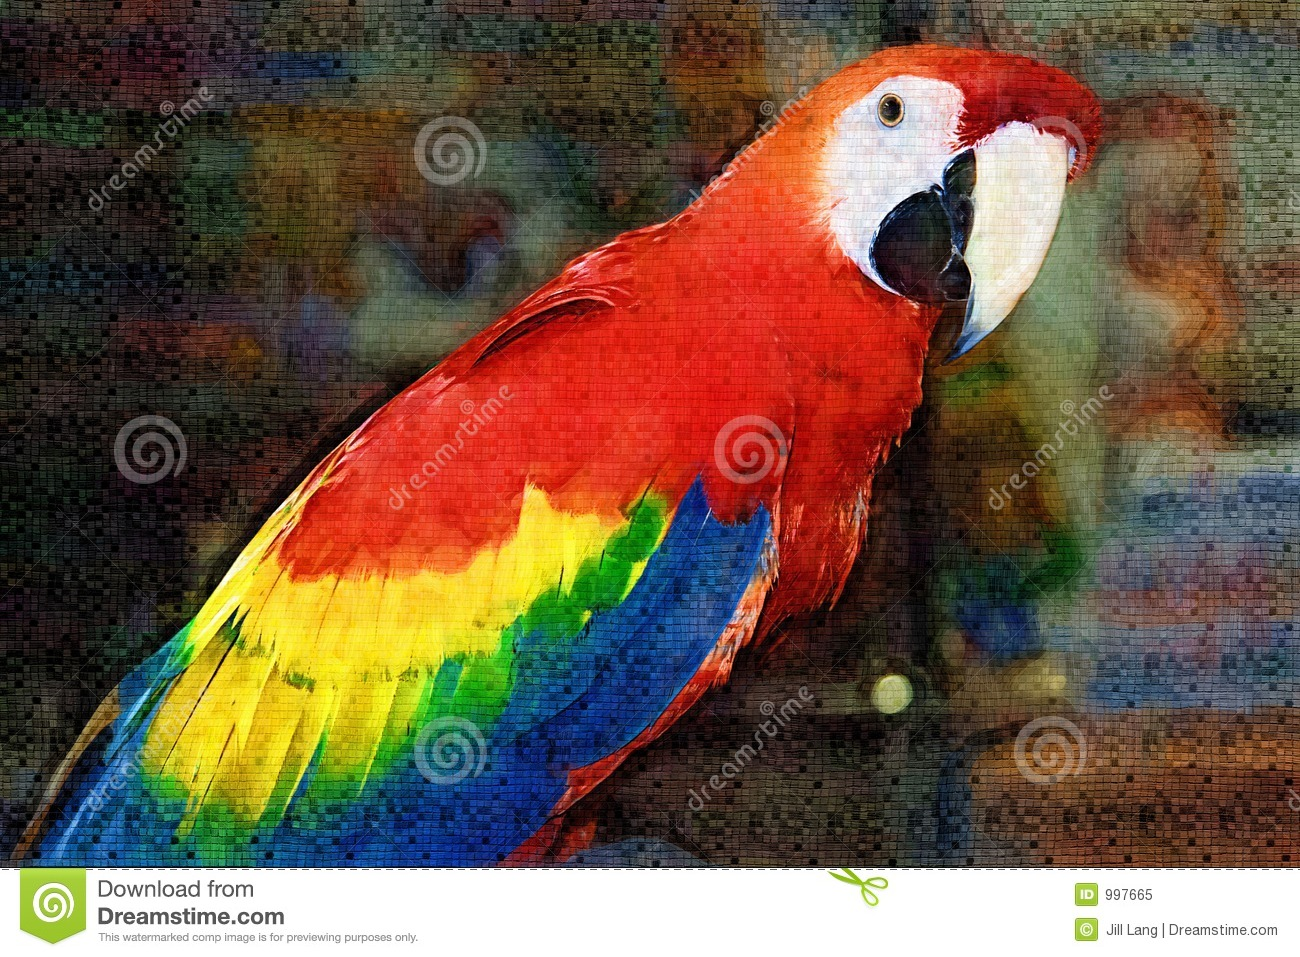 Nature Wallpaper 3d For Desktop Free Download Scarlet Macaw Painting Royalty Free Stock Photo Image